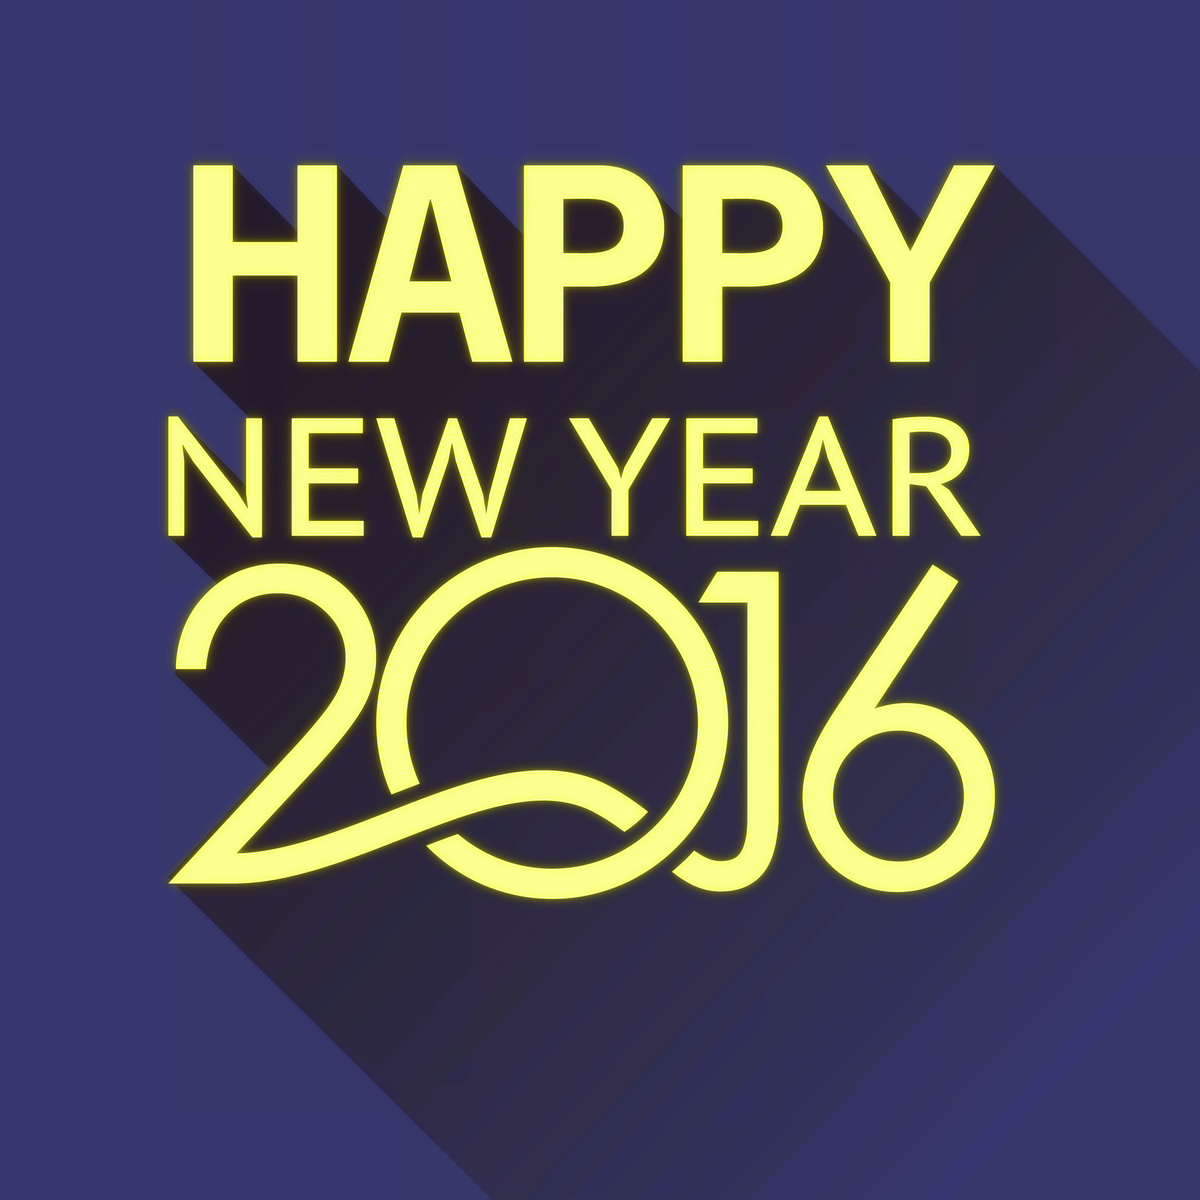 New Year 2016 card